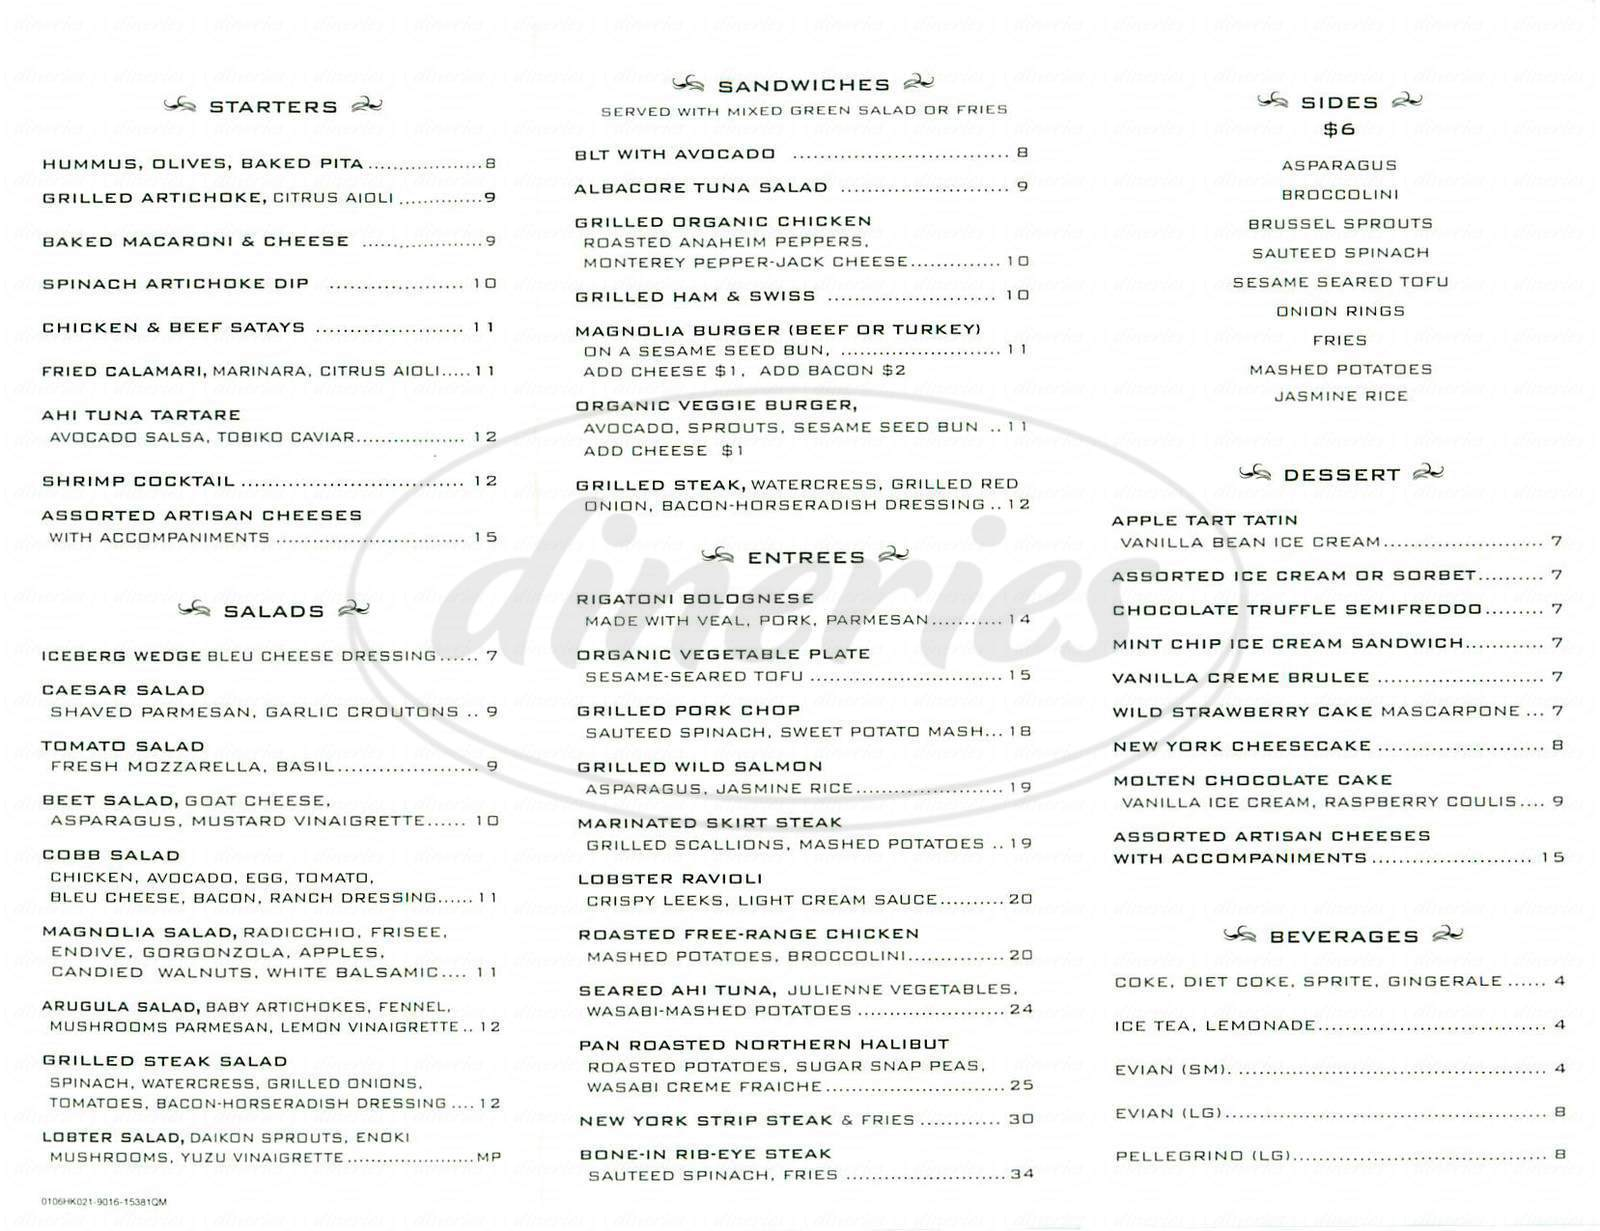 menu for Magnolia